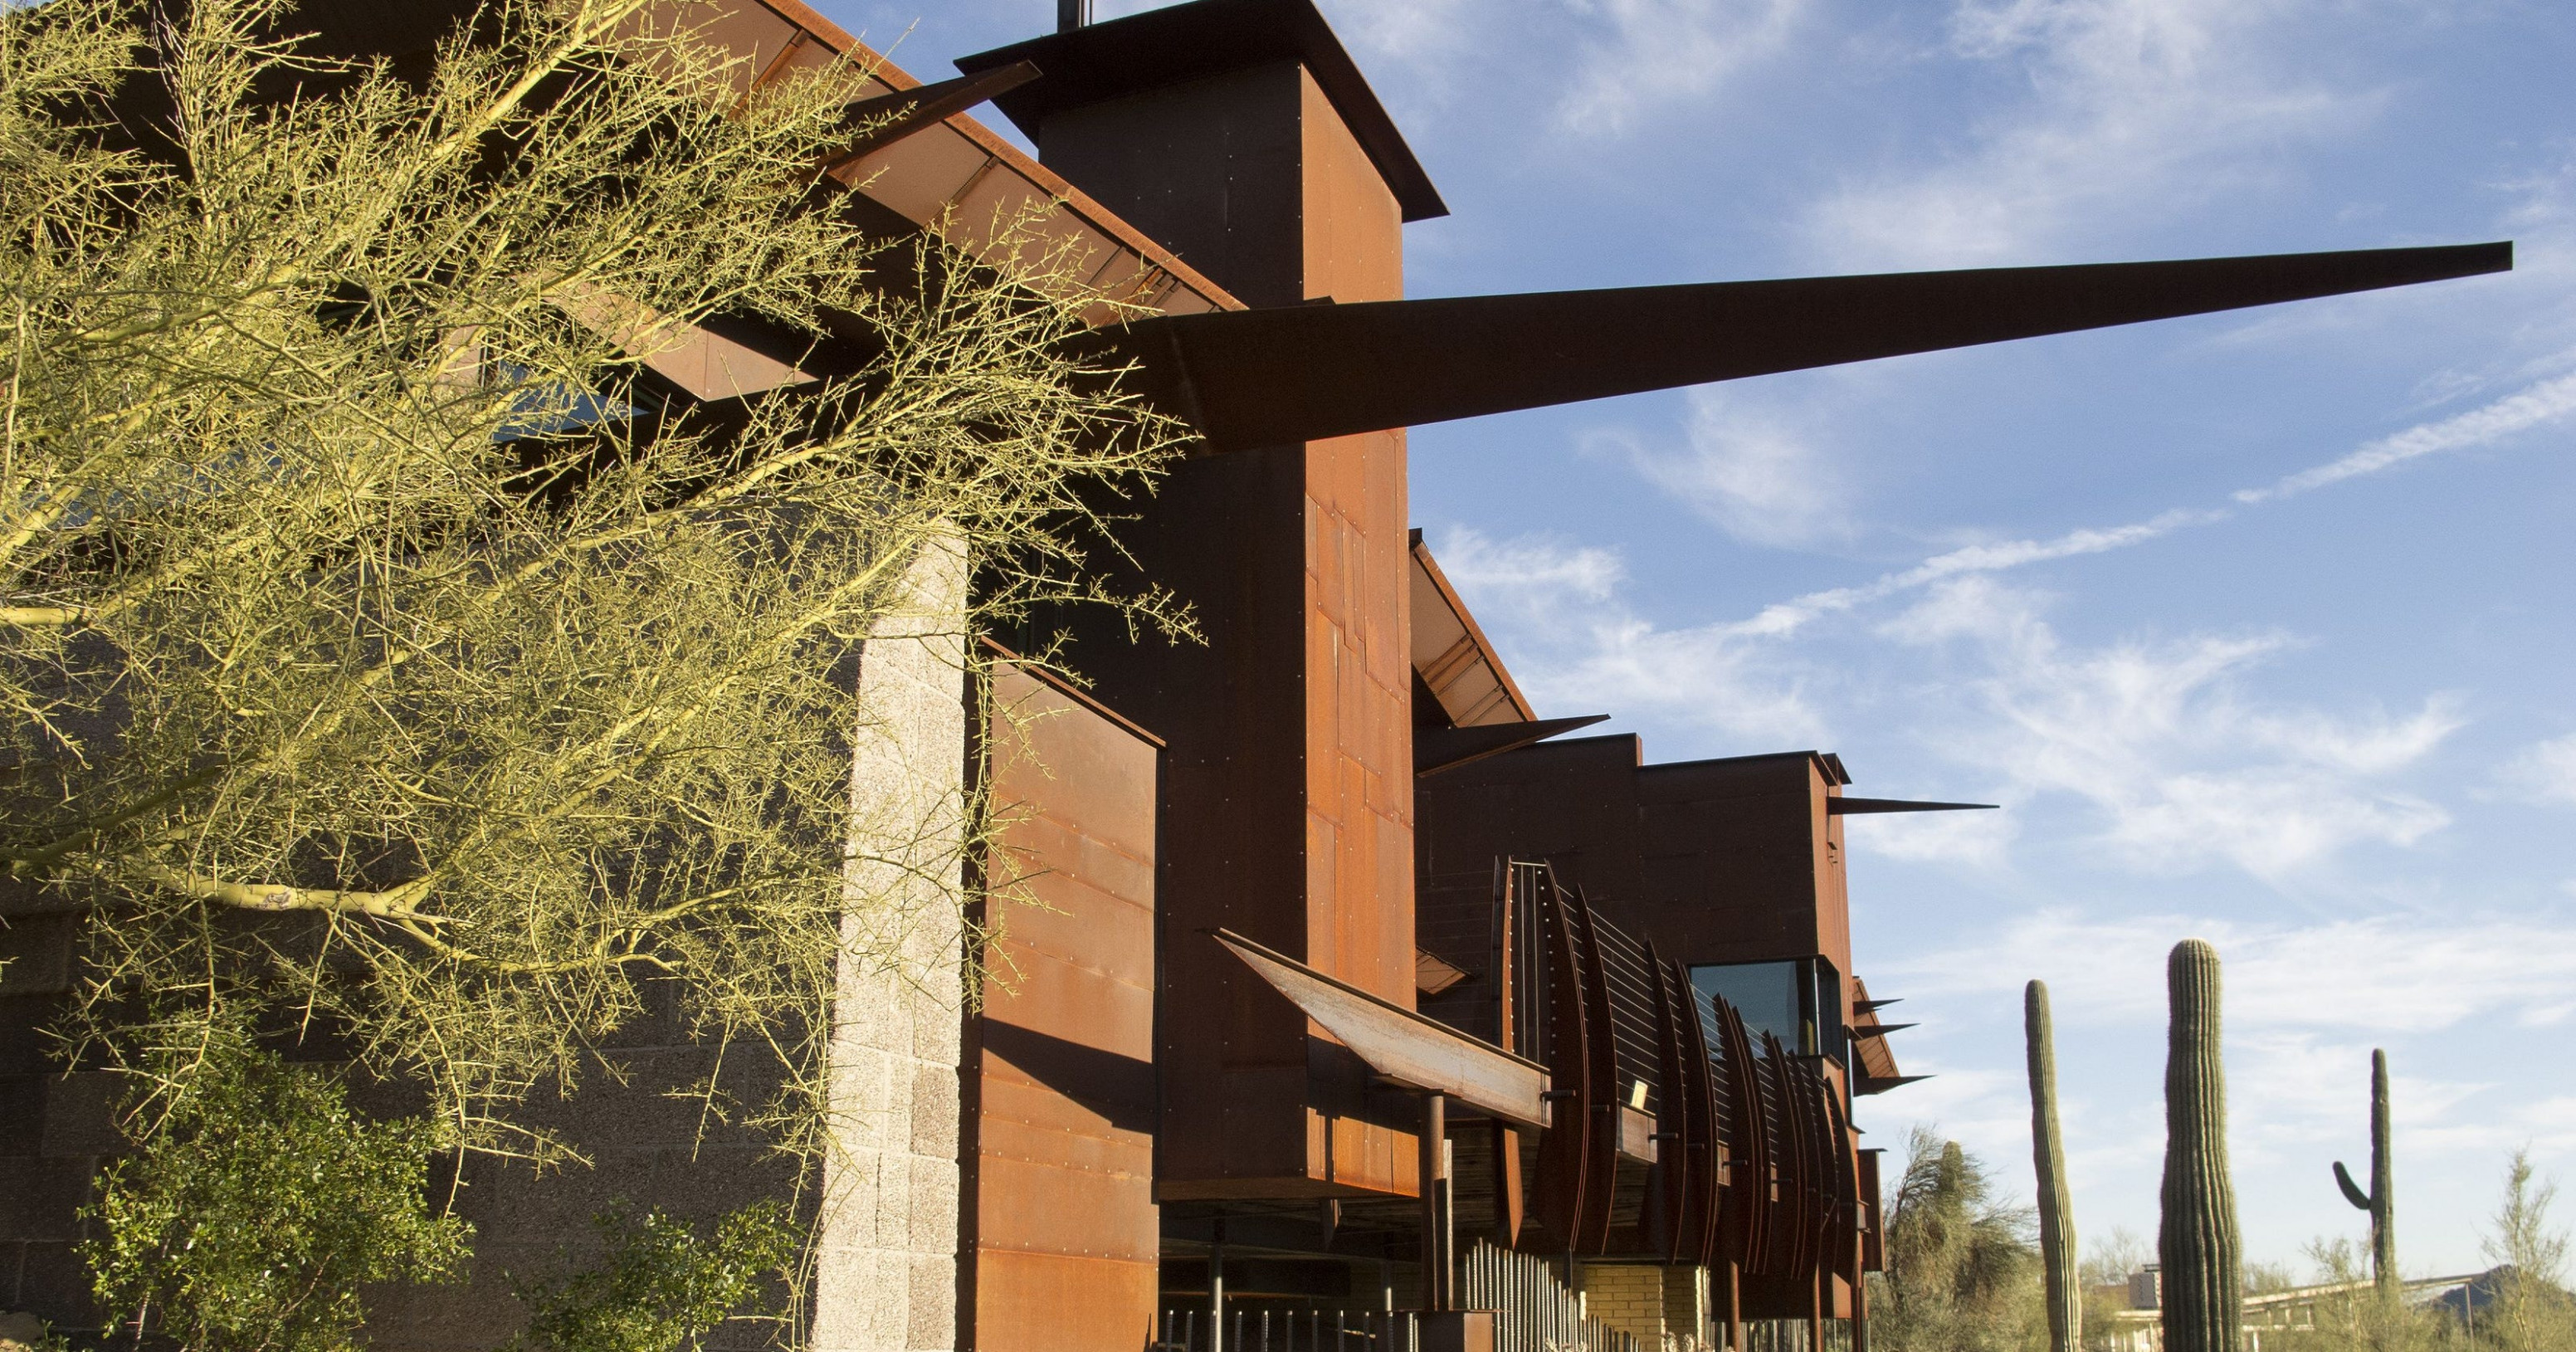 Cool Home: 'Casa De Rusty' Goes Boldly Where Owners Had ..